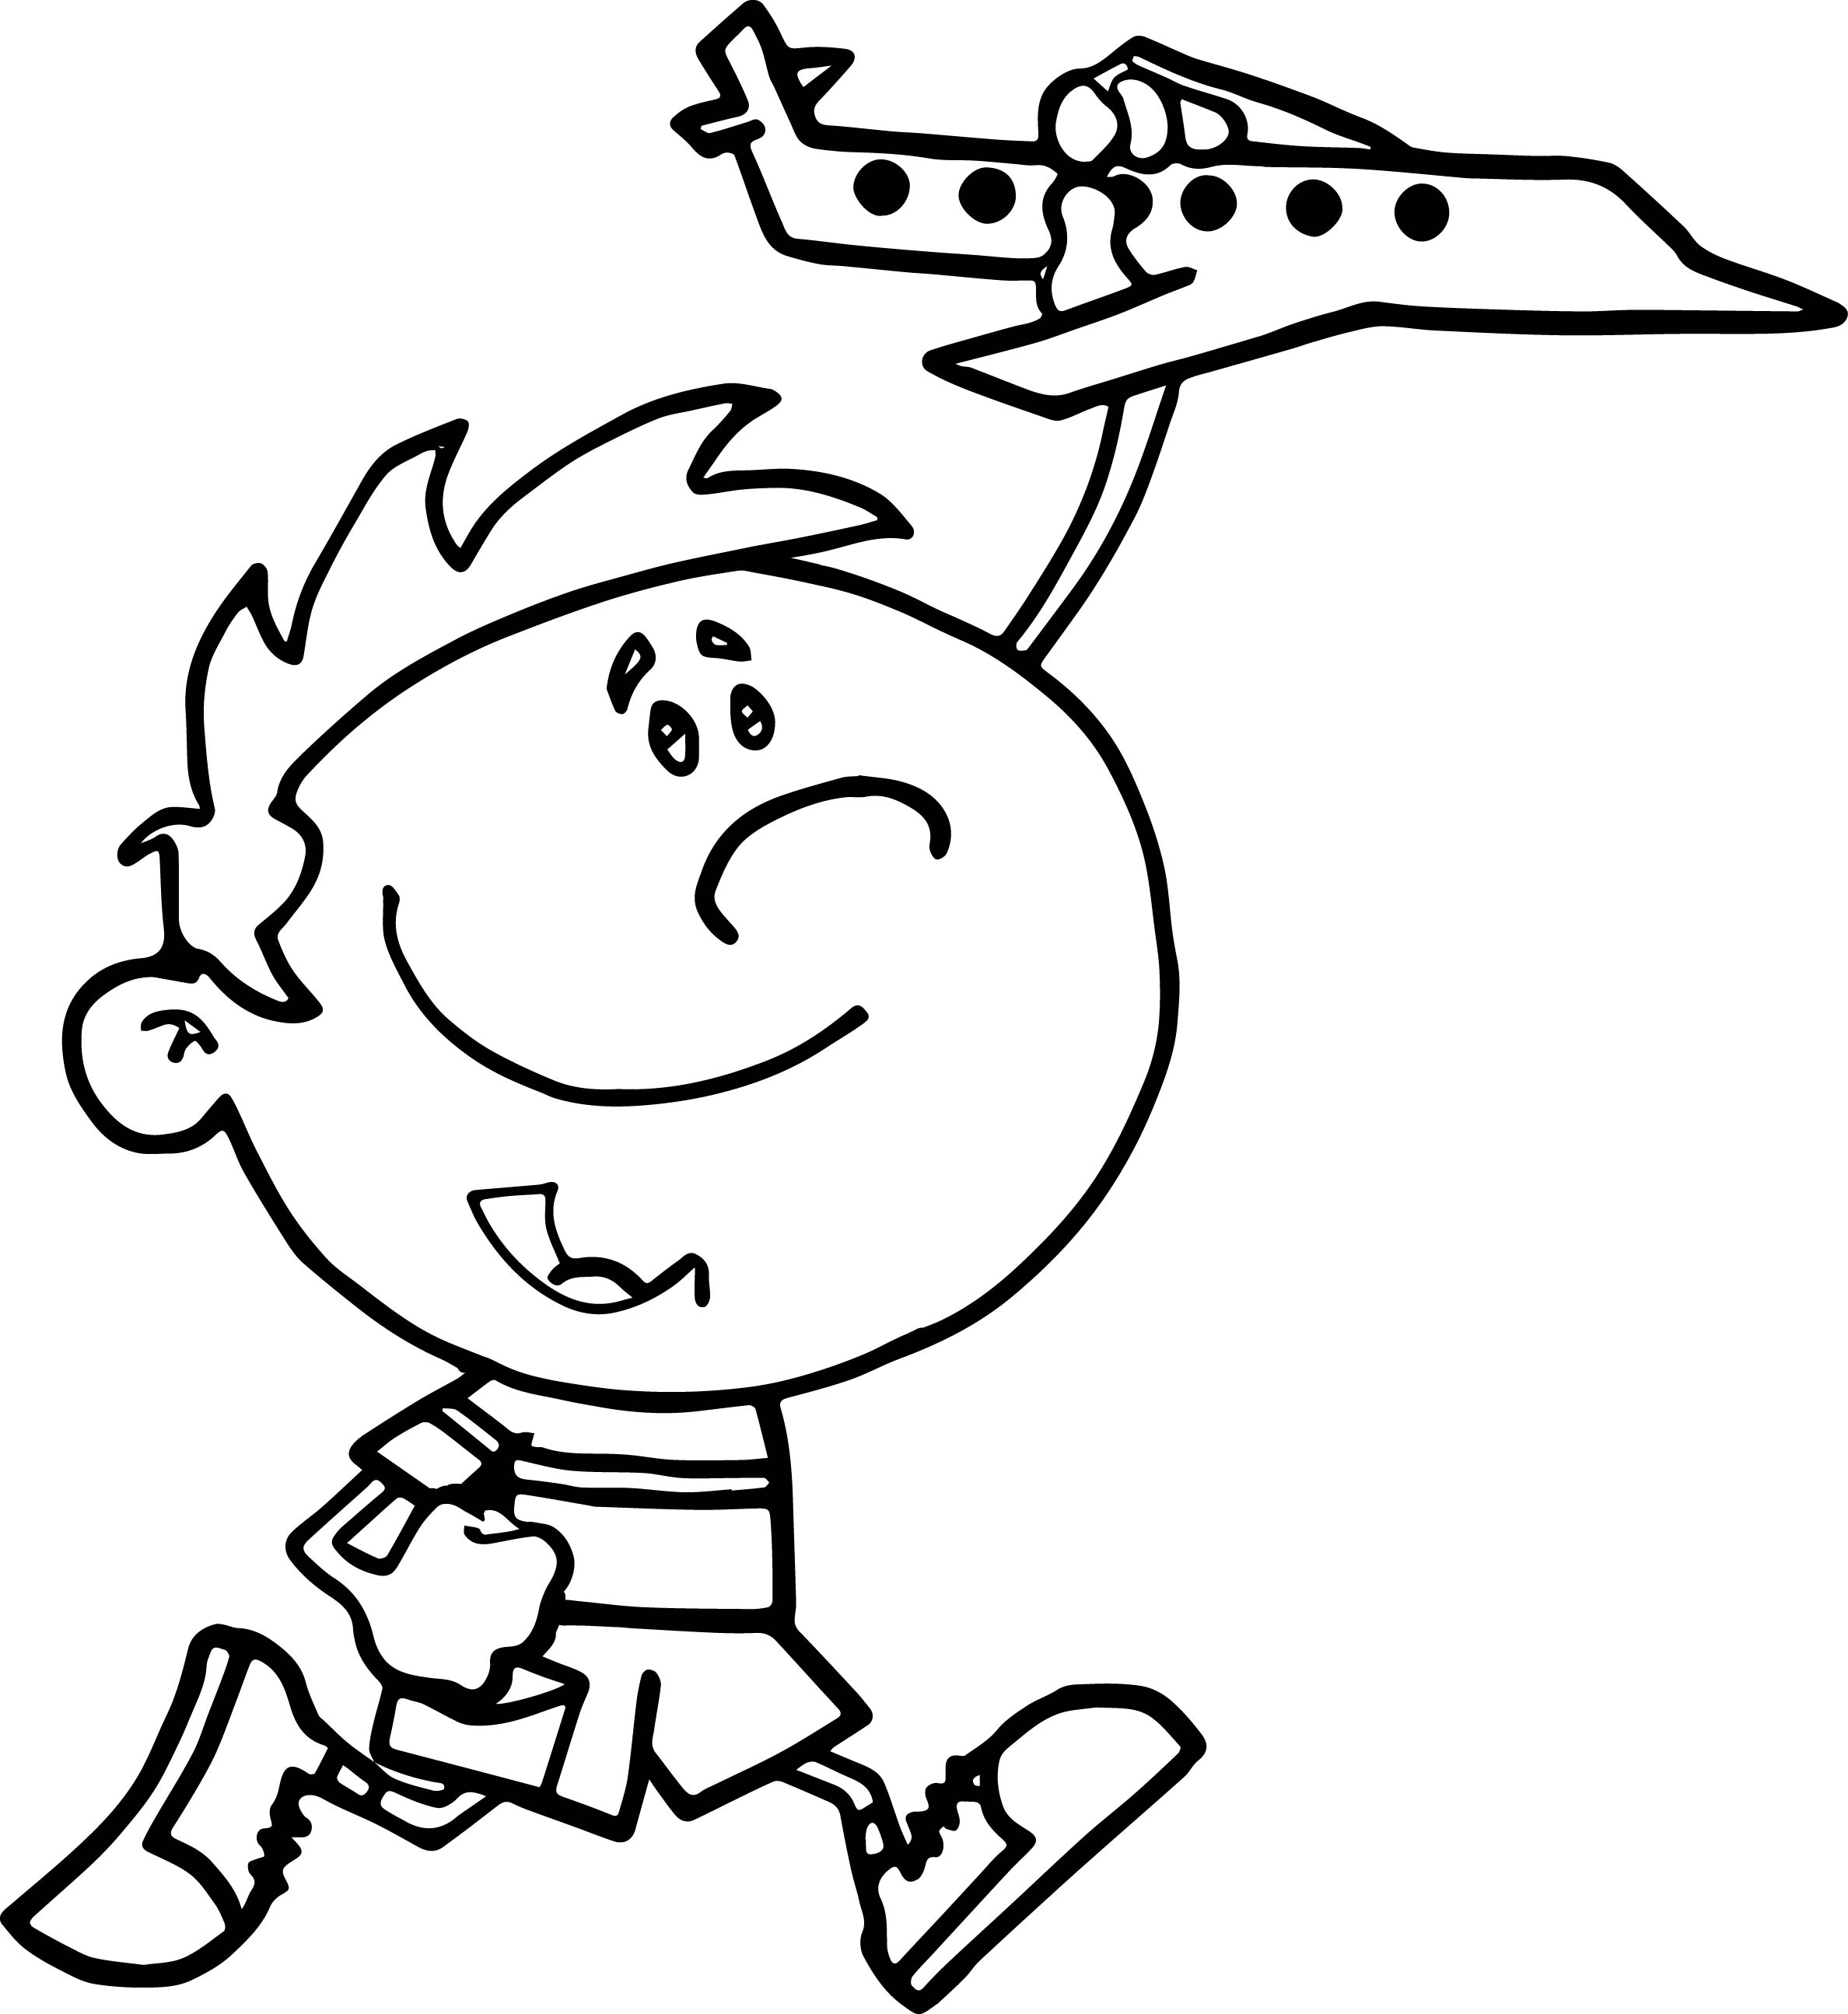 cockpit little boy playing with toy airplane coloring page - Little Boy Coloring Pages